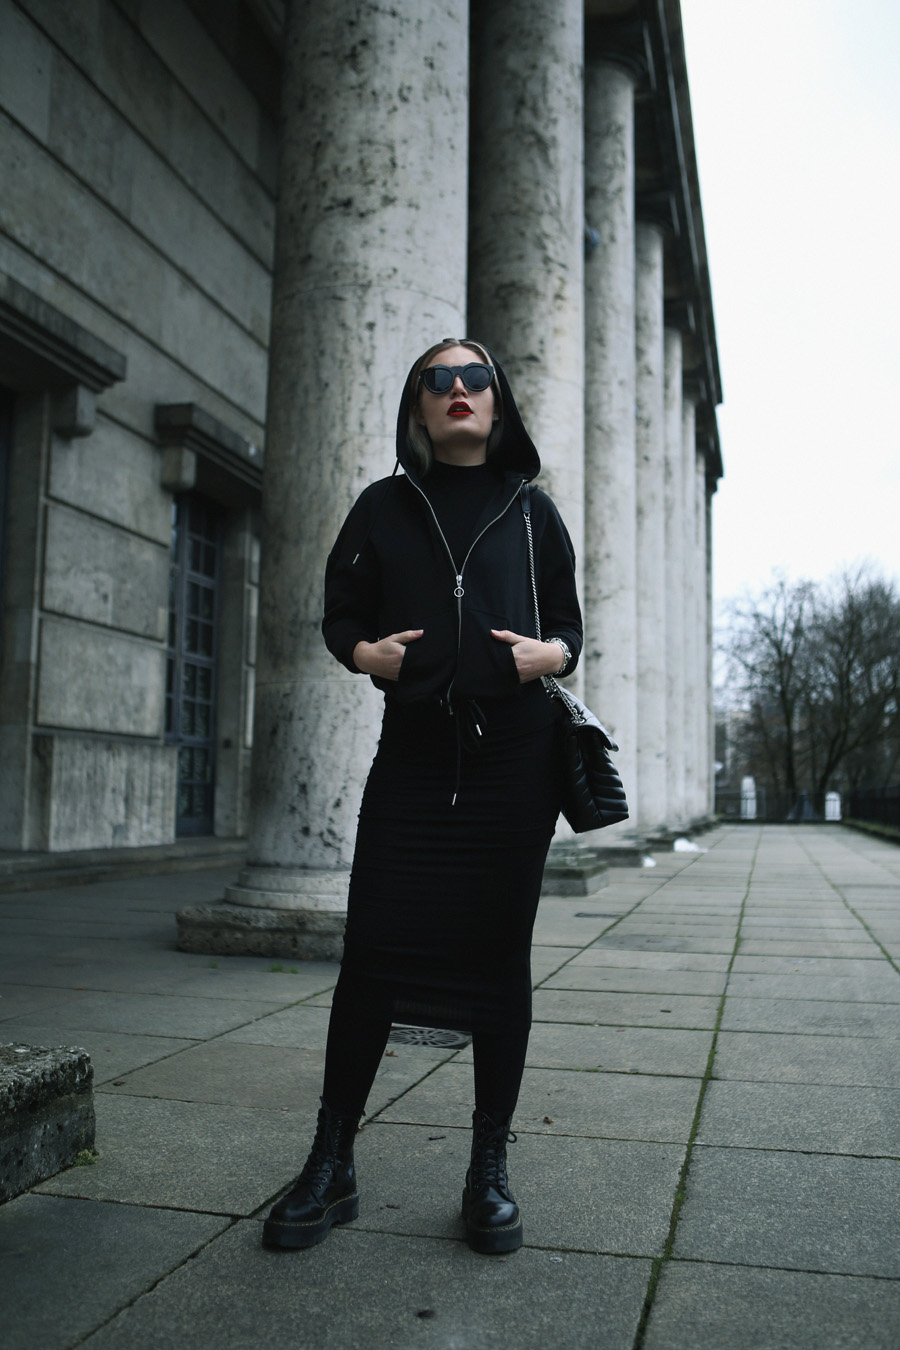 lauralamode-outfit-ootd-streetstyle-style-fashion-fashionblogger-blogger-mode-urban classics-le specs-dr martens-doc martens-munich-muenchen-muc